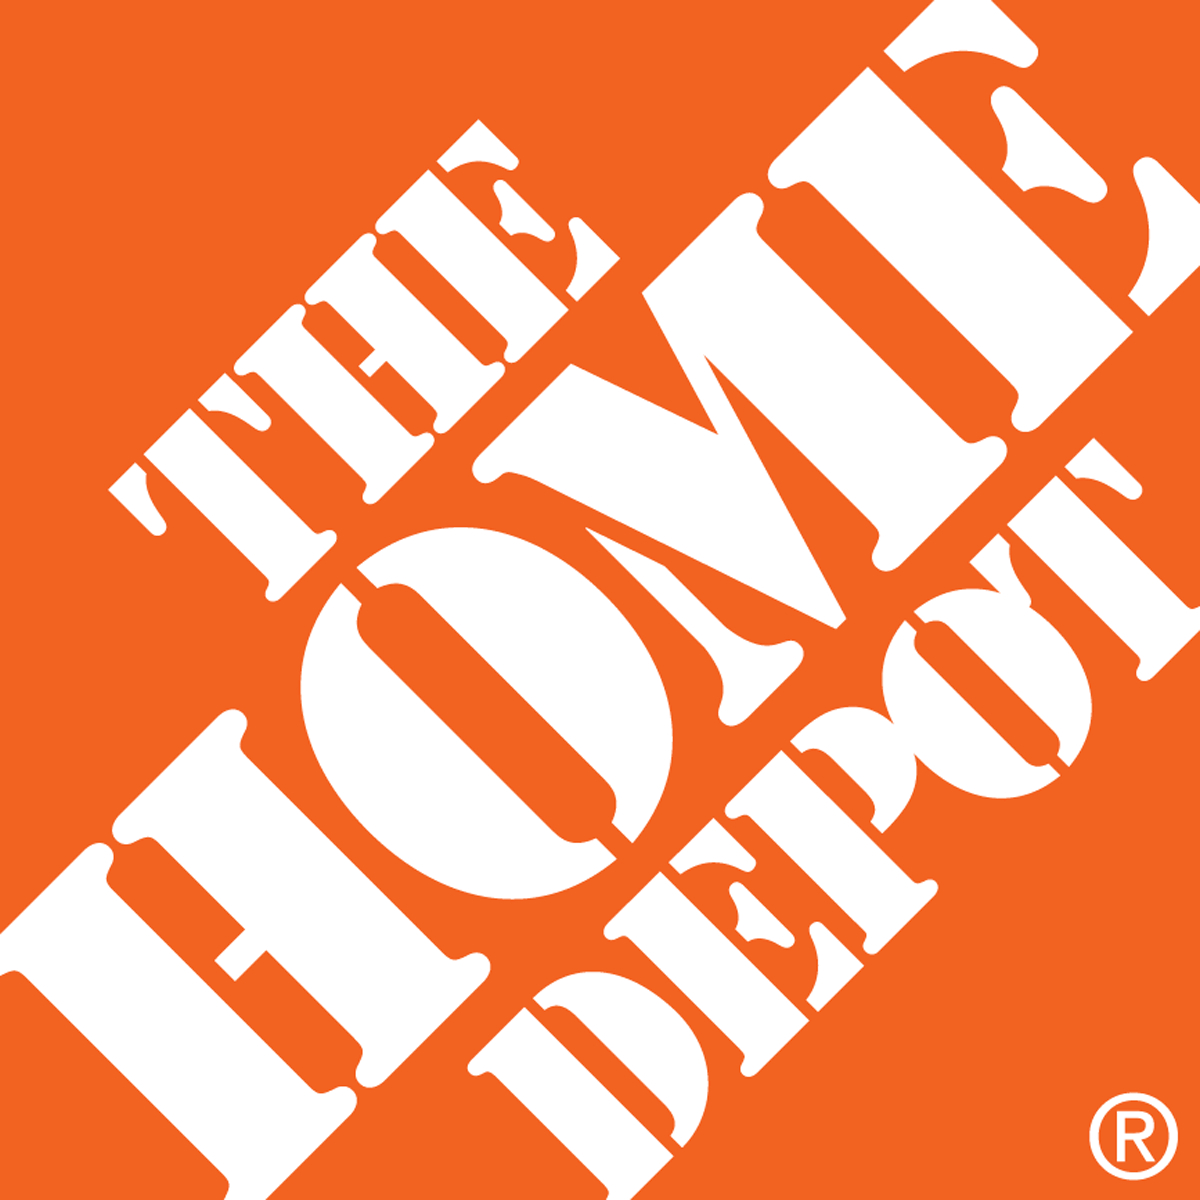 20% Off Home Depot Coupons, Promo Codes & Deals 2019 - Savings - Free Printable Home Depot Coupons